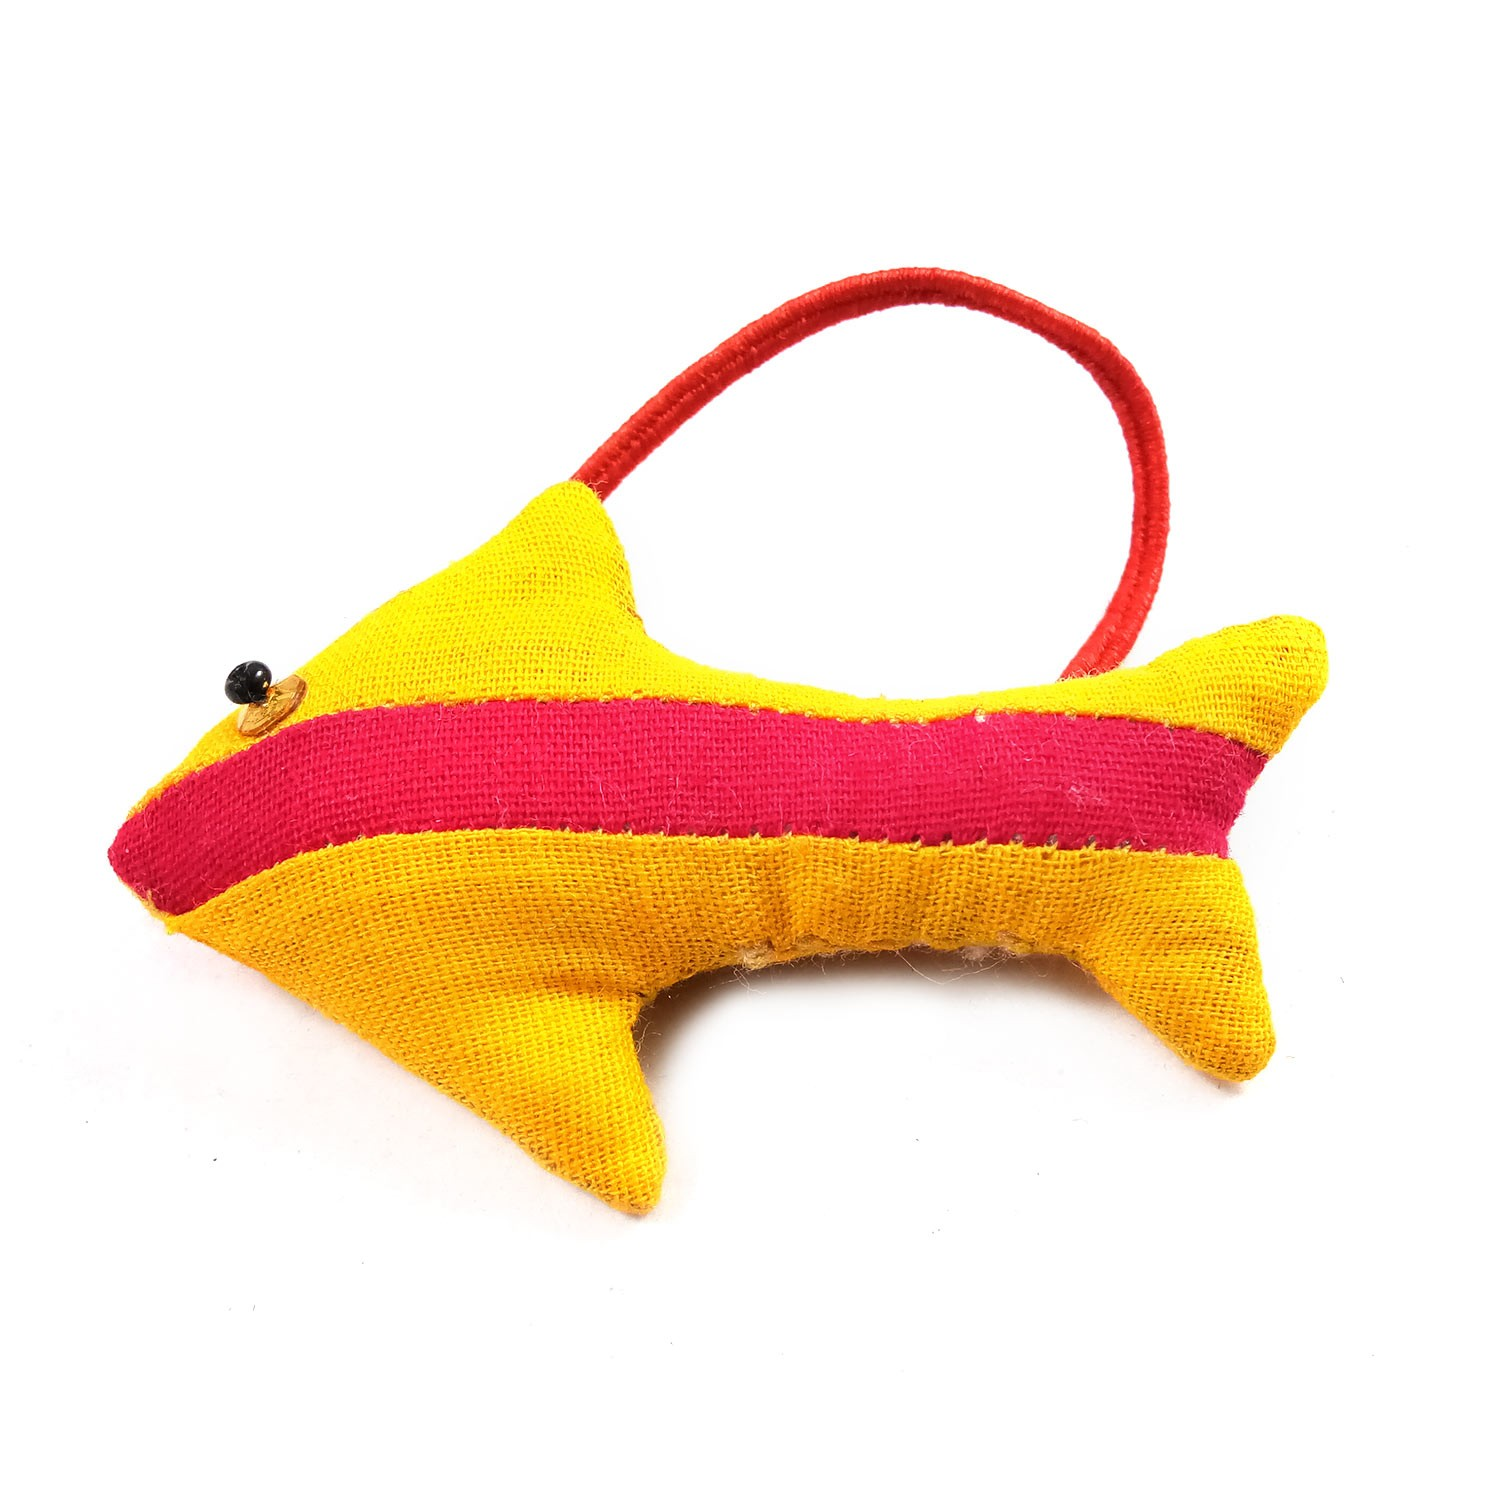 Handmade Multicolor Fish Design Car Mirror Hangings Ornaments, Bag Charms Ornaments Or Keychain & Keyring Door Hanging by Rural Artisan.